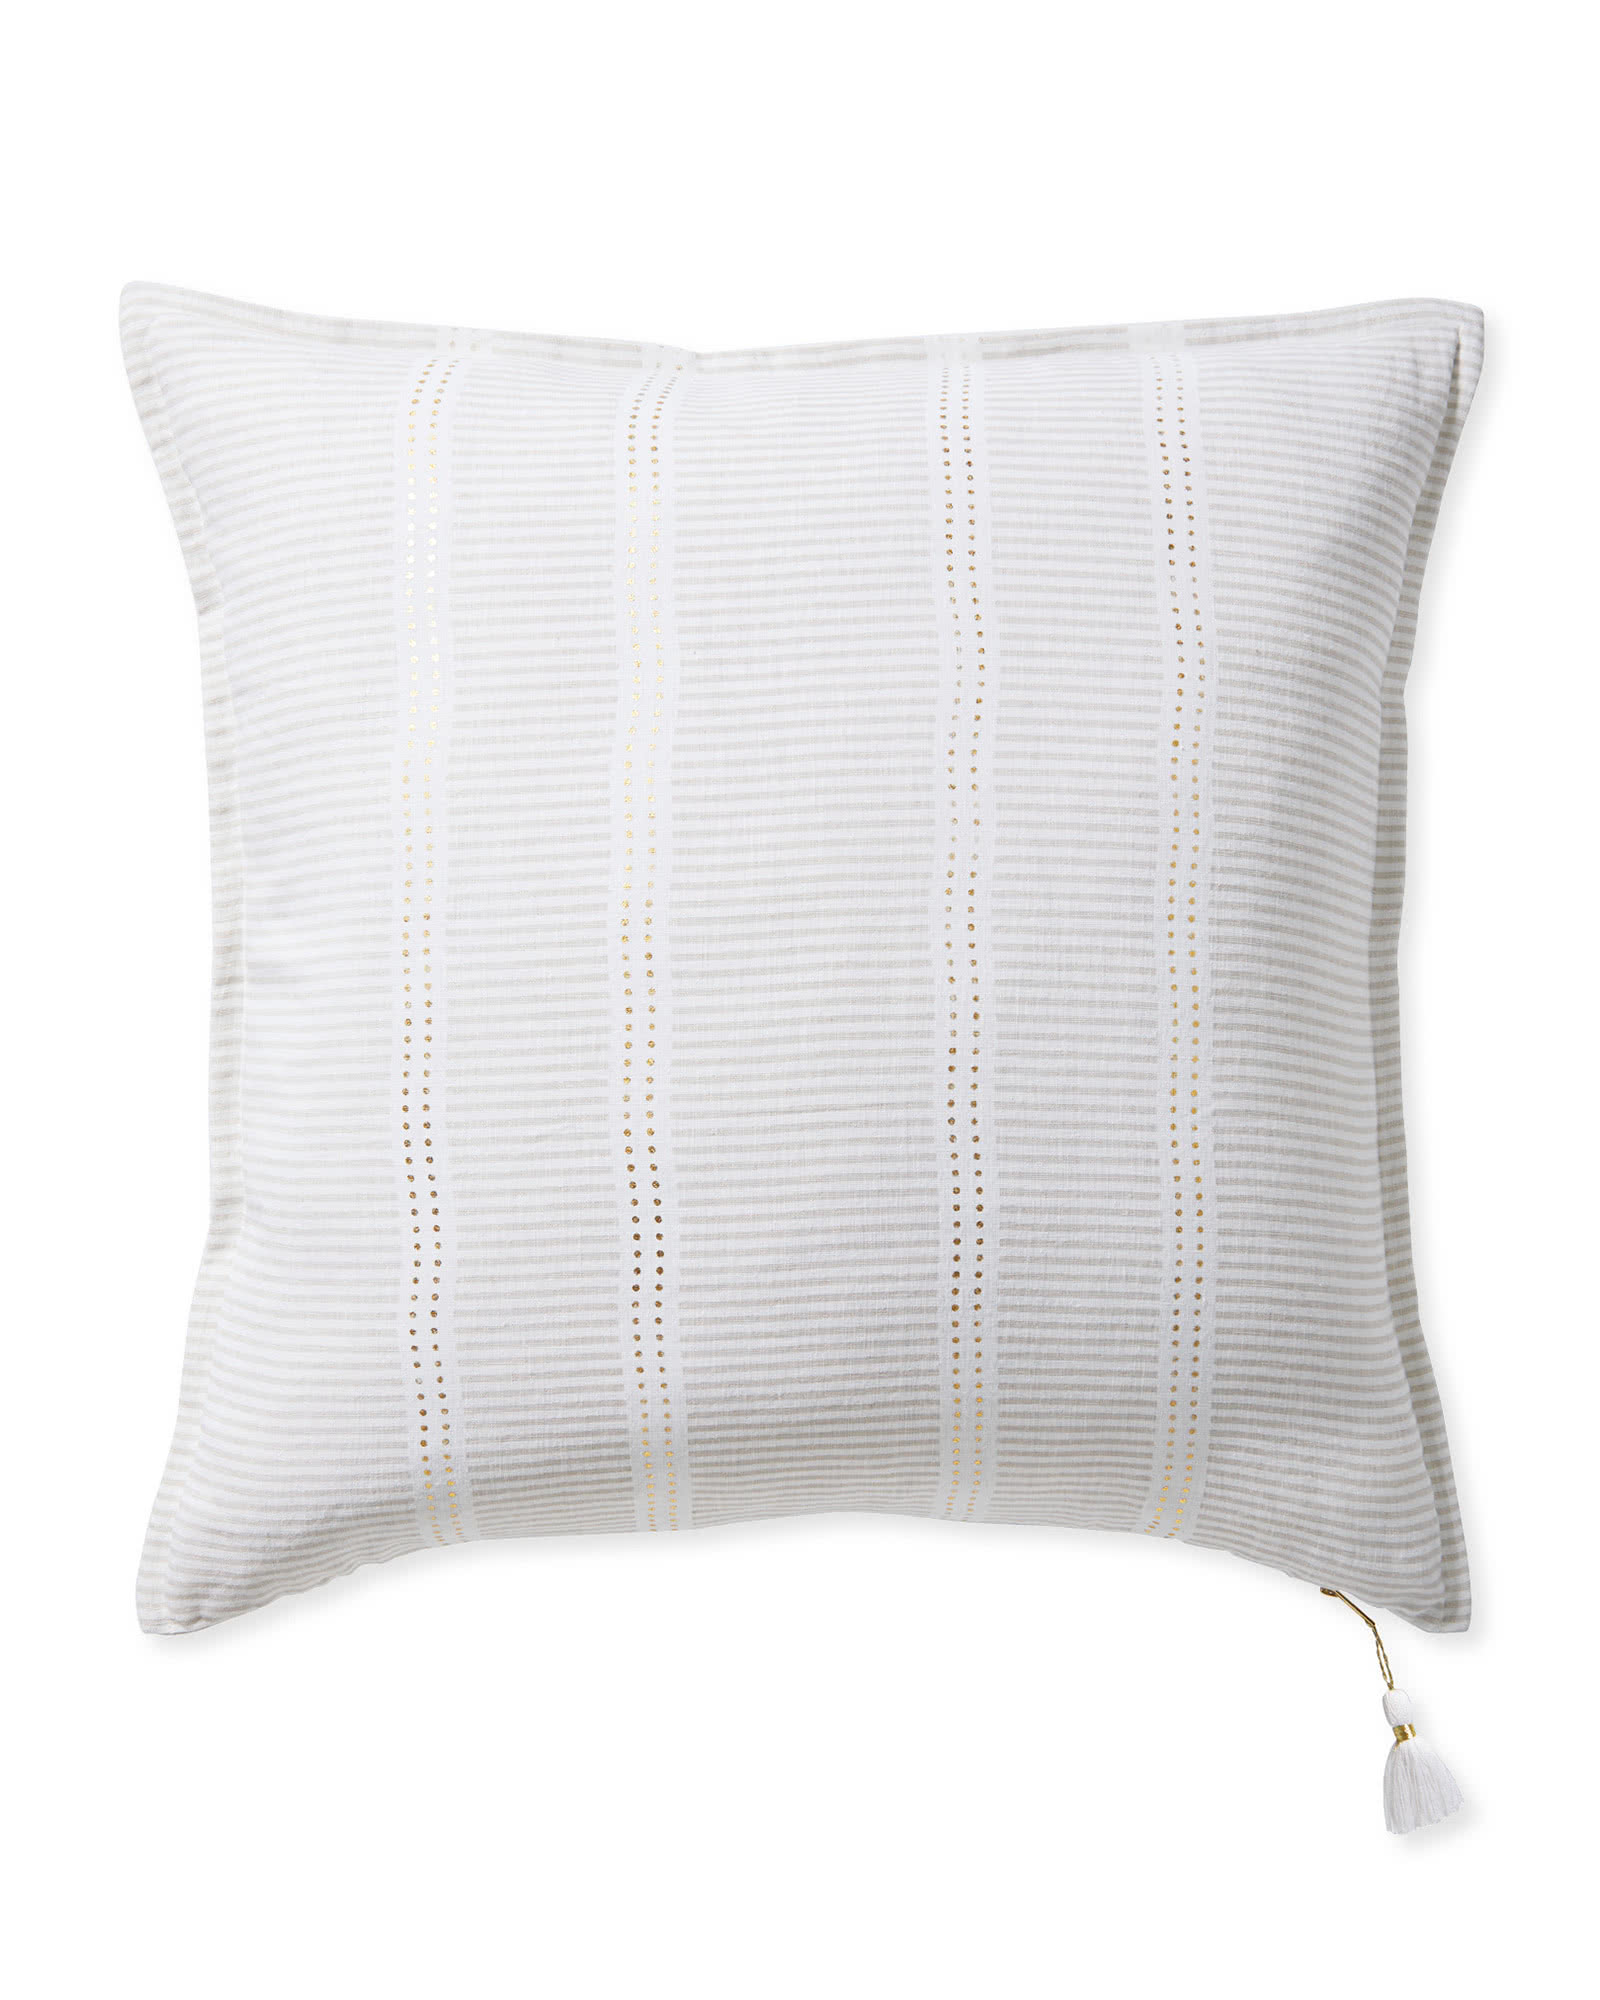 Piedmont Pillow Cover, Sand